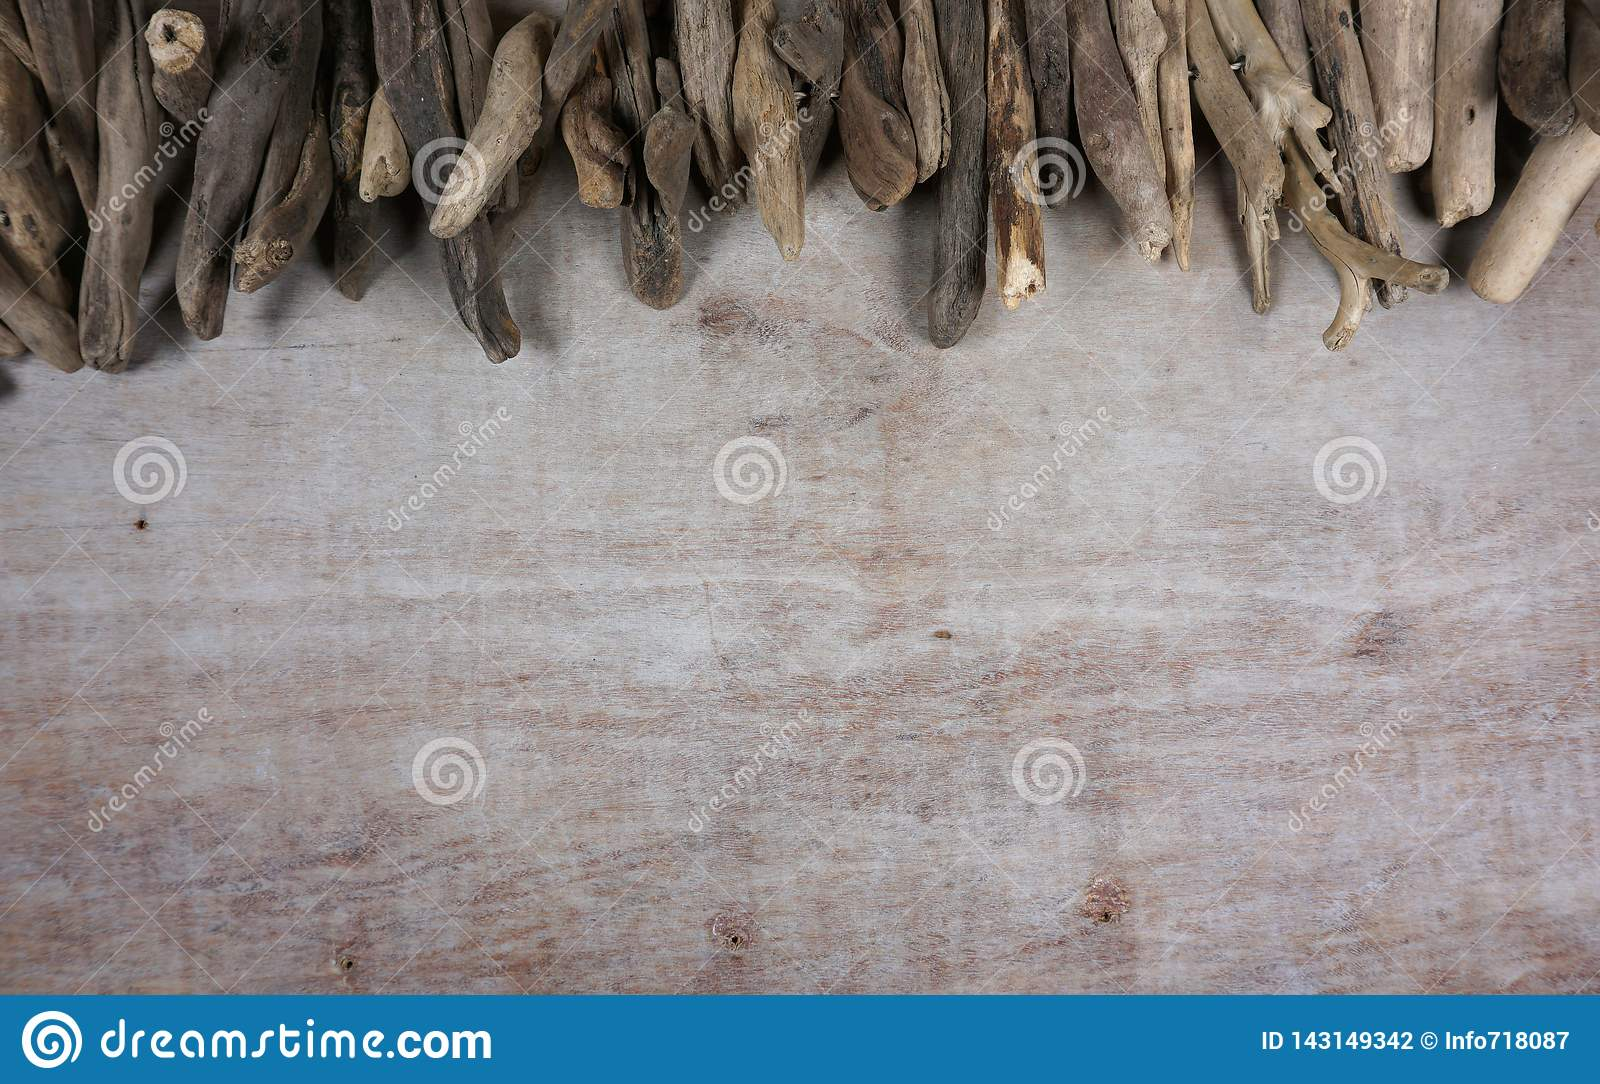 Driftwood At Wooden Background Decoration Maritime Items Sea Objects With Copy Space For Your Own Text Stock Photo Image Of Driftwood Copyspace 143149342